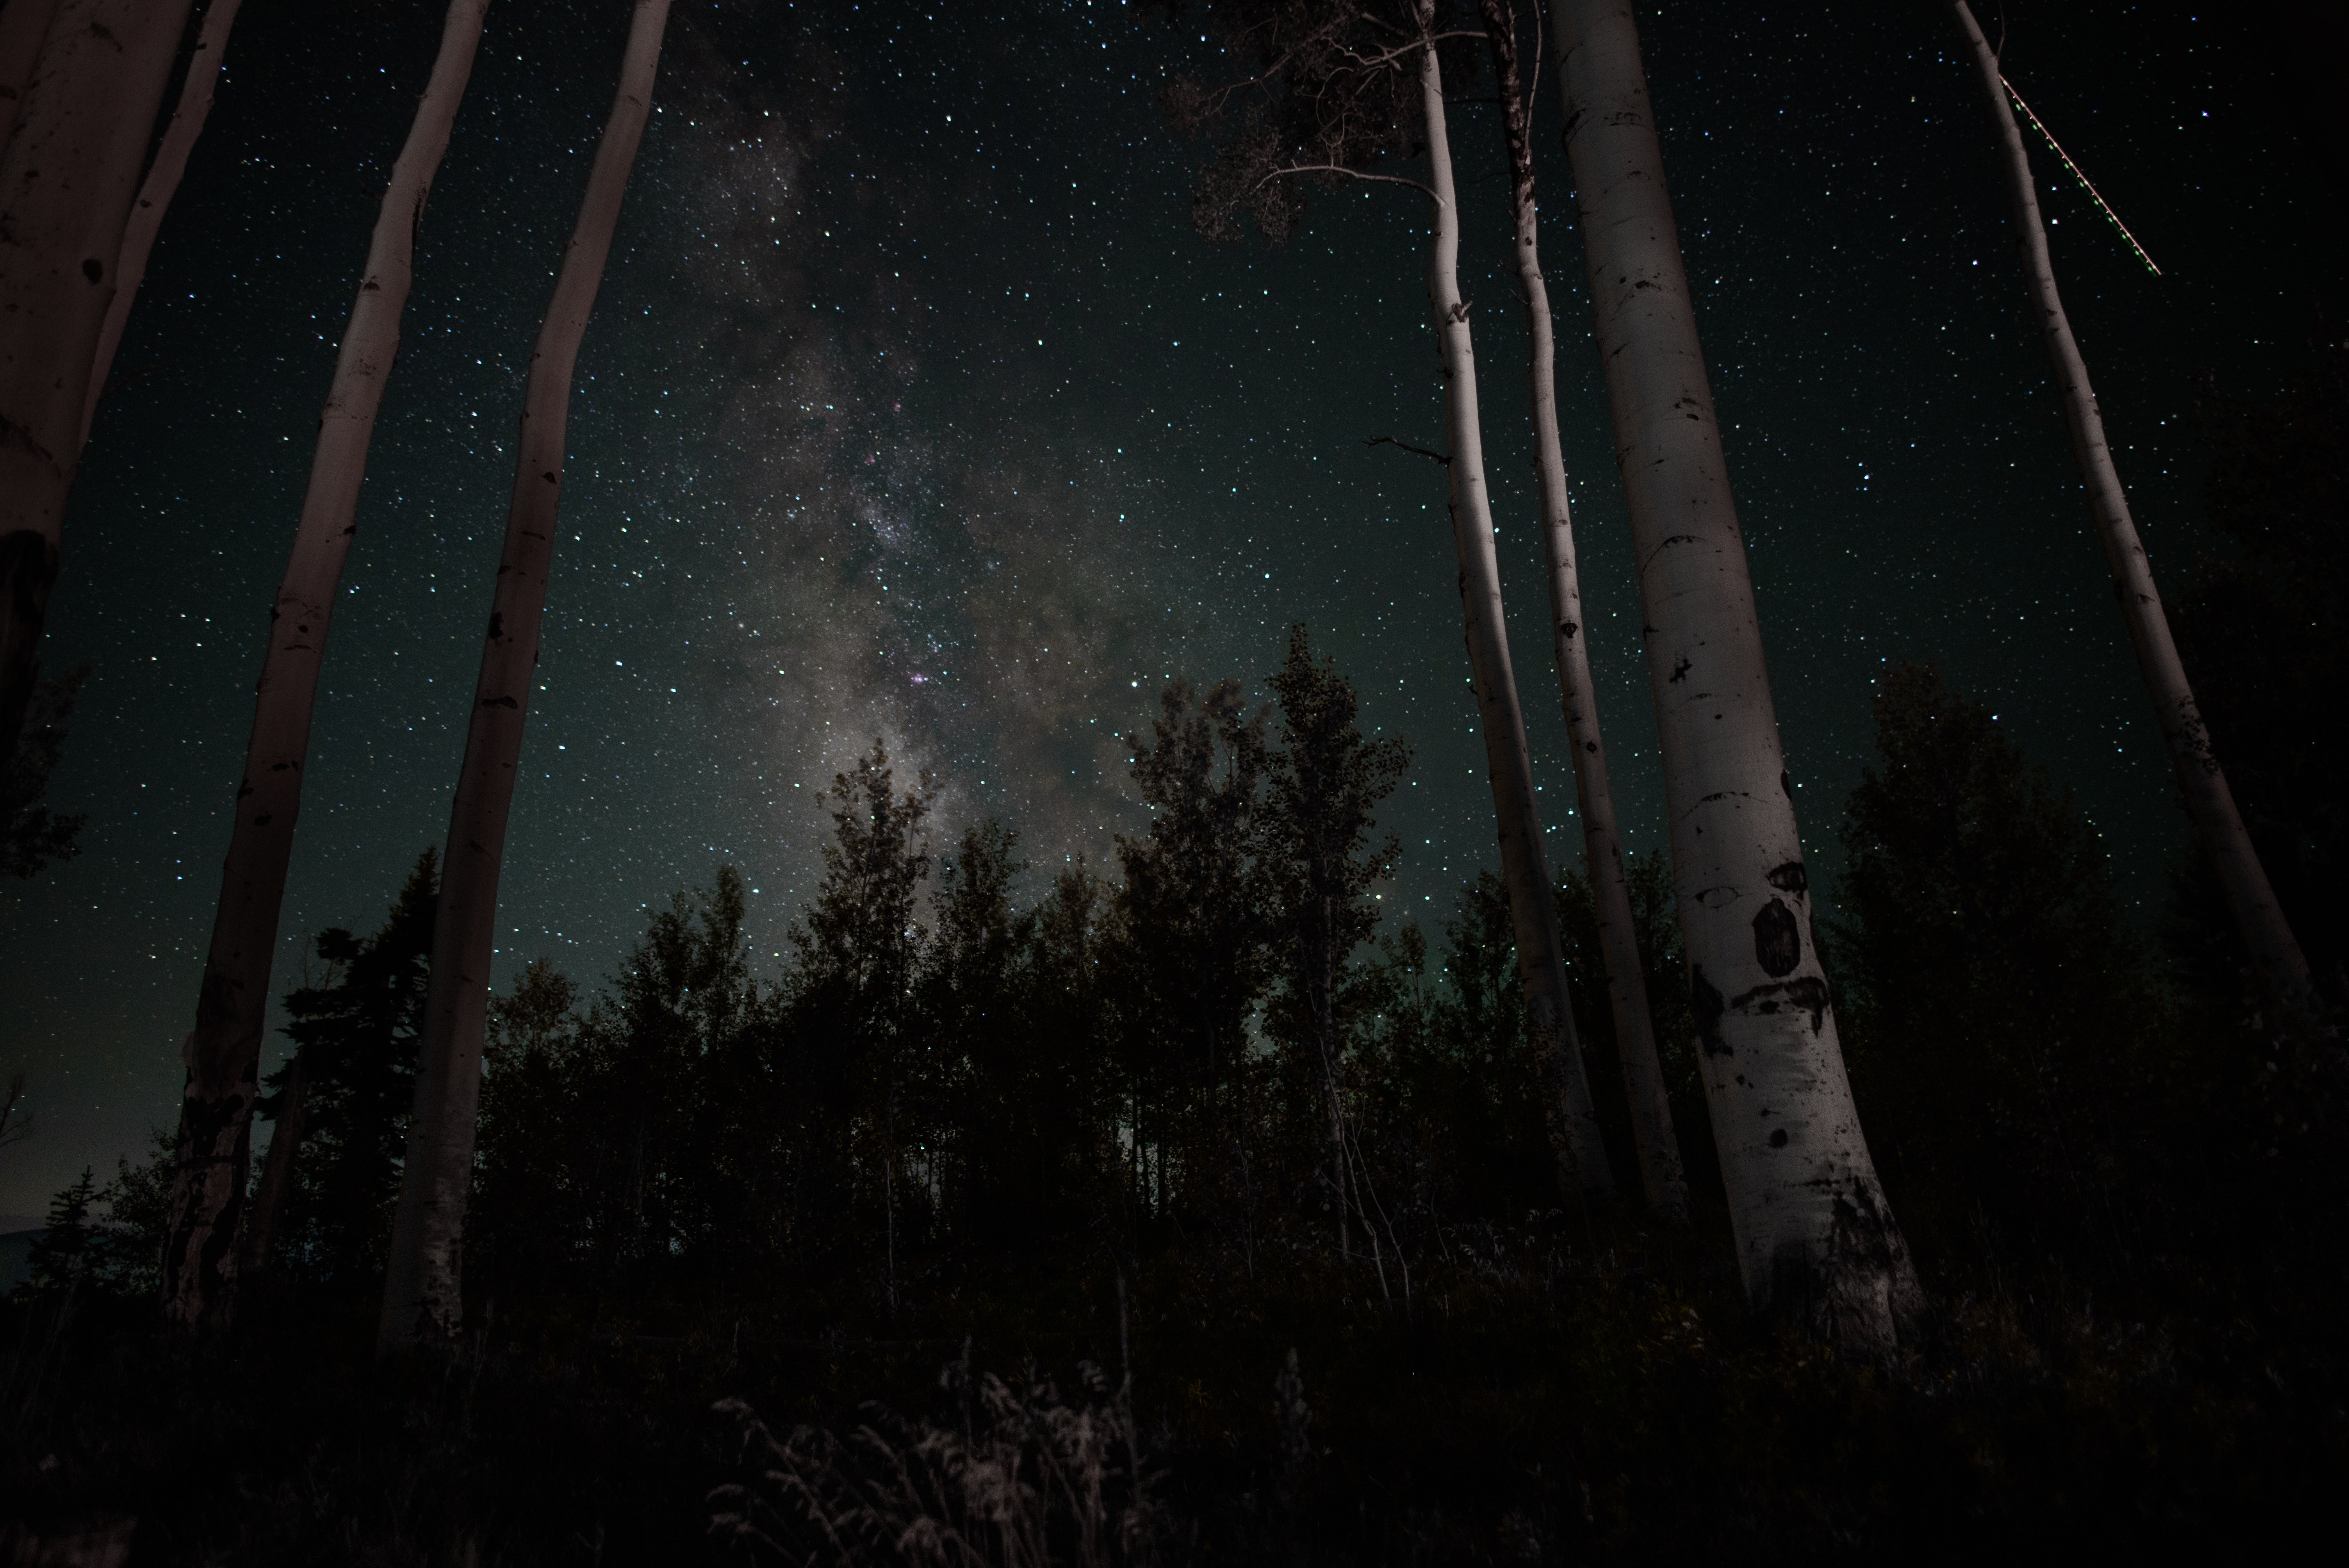 Tall birch trees under a starry sky in Silverthorne